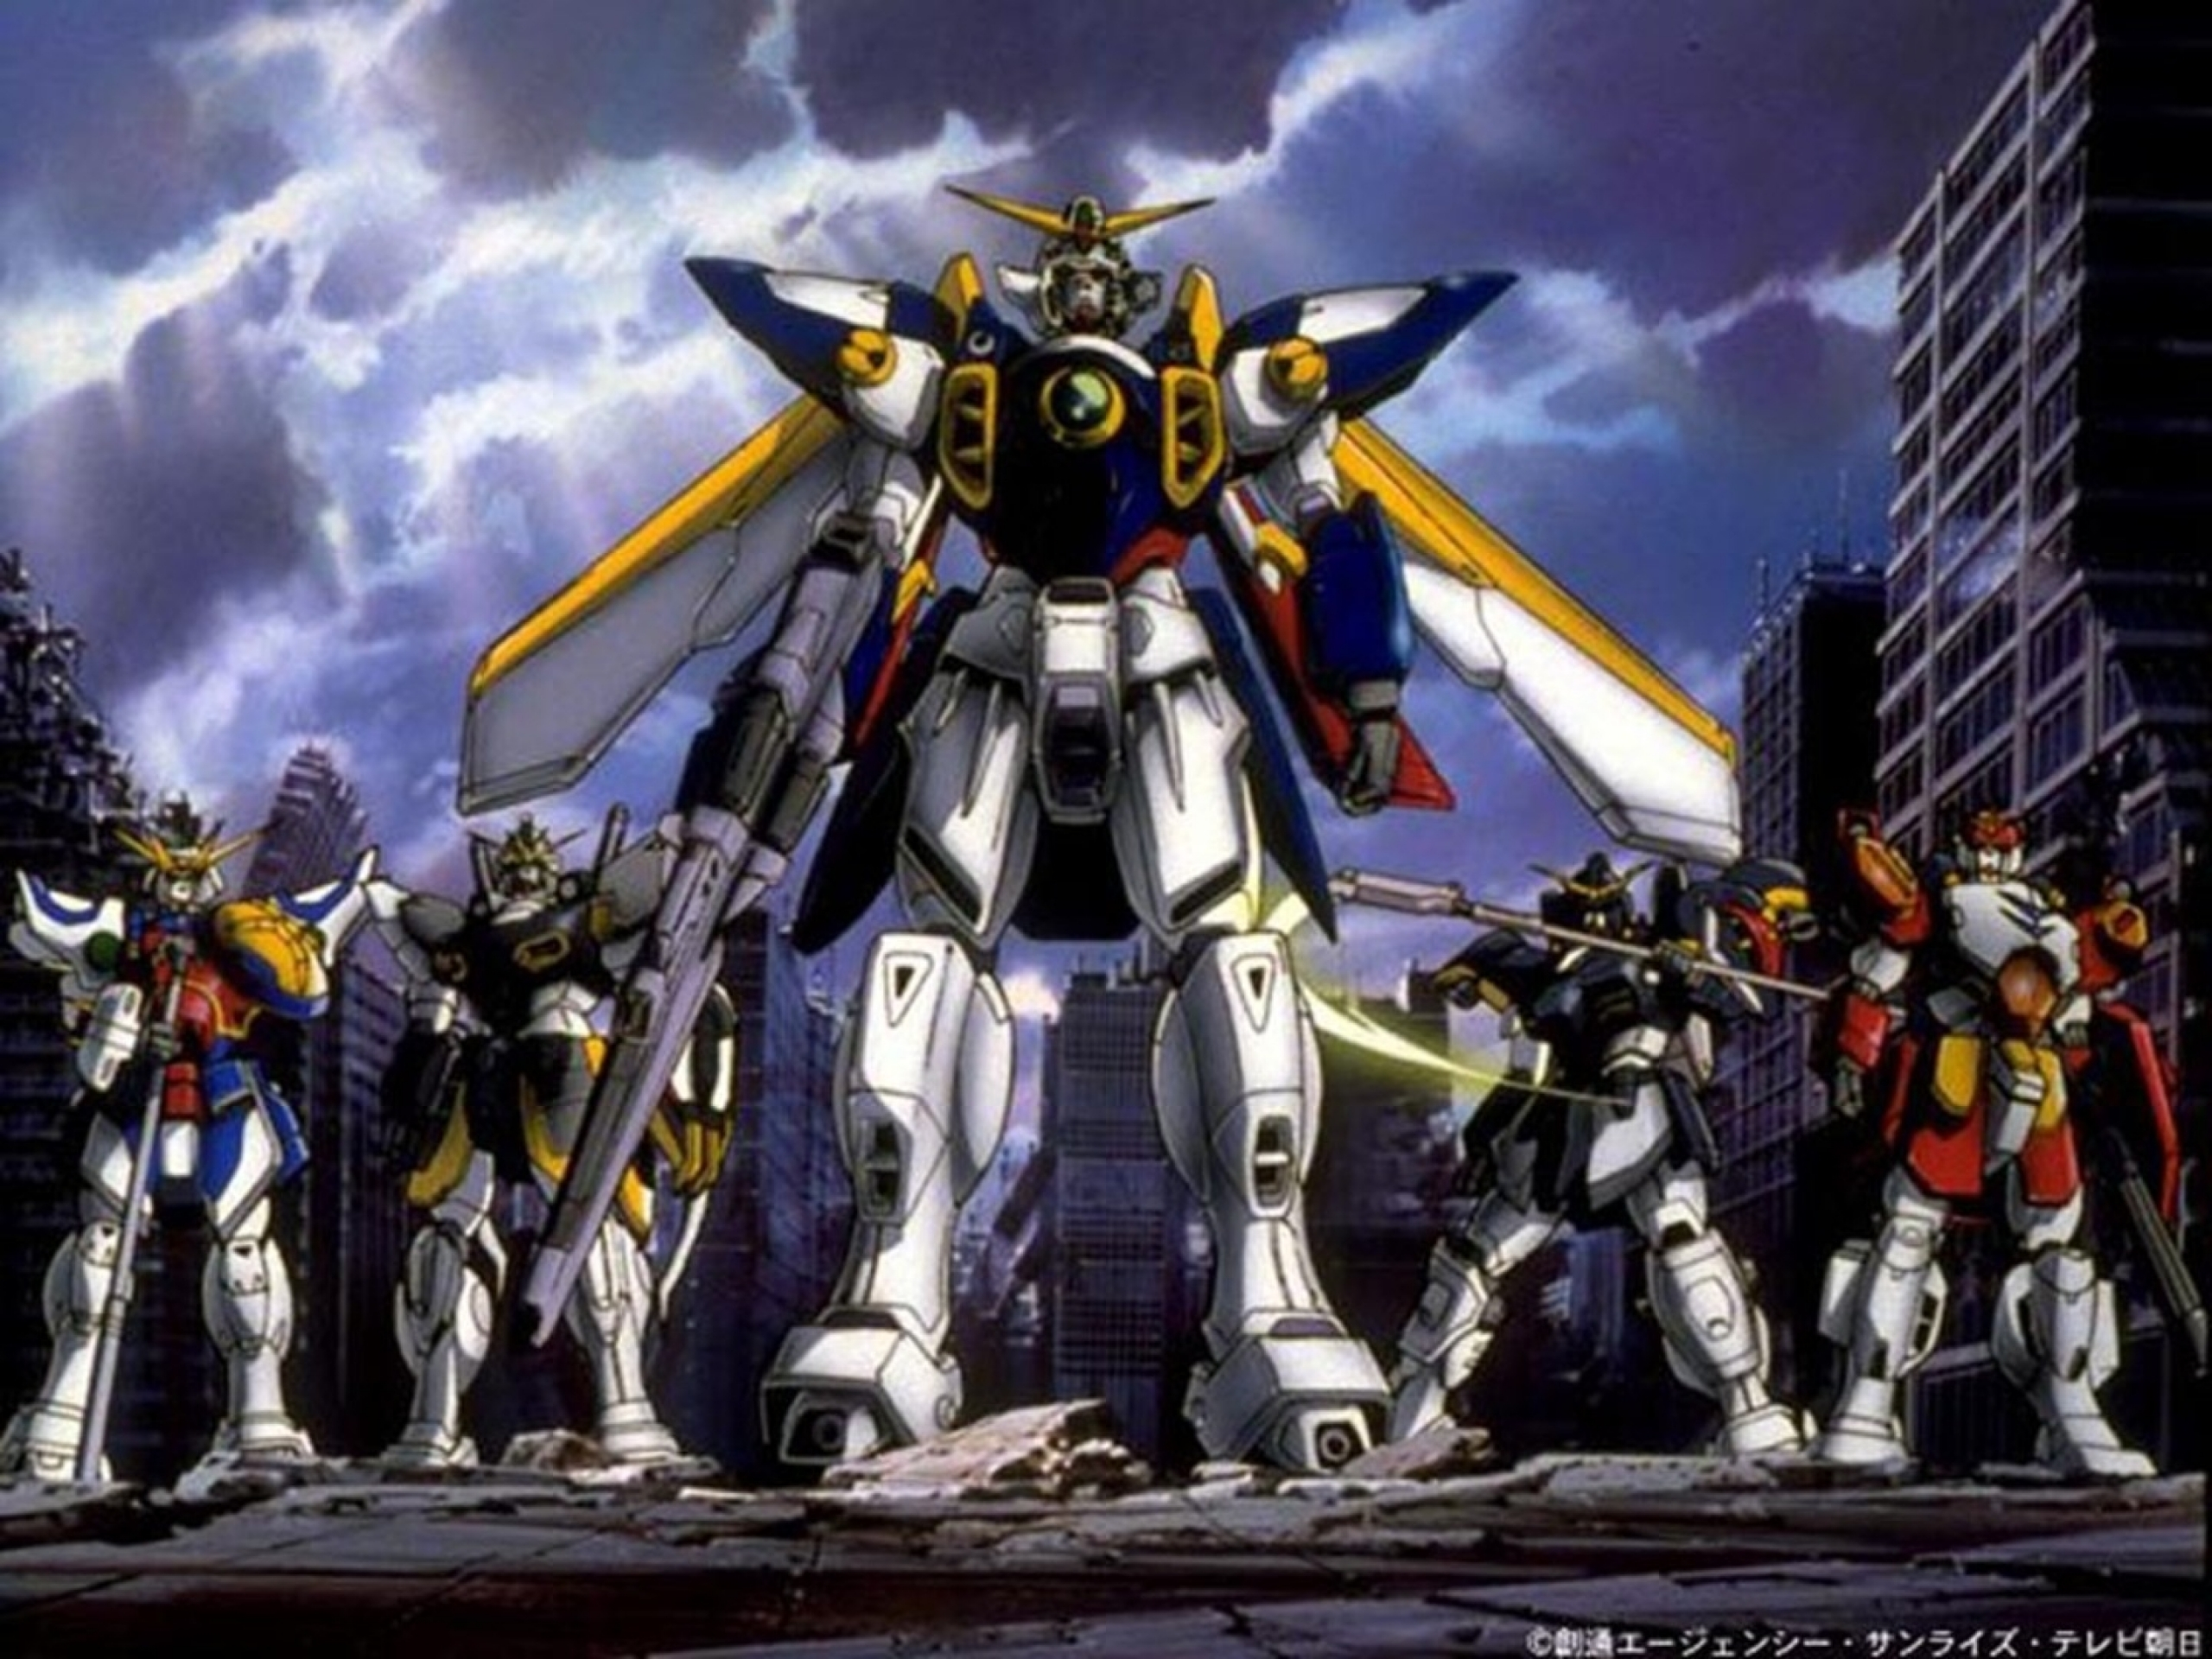 Mobile Suit Gundam Wing by Rizwan Merchant